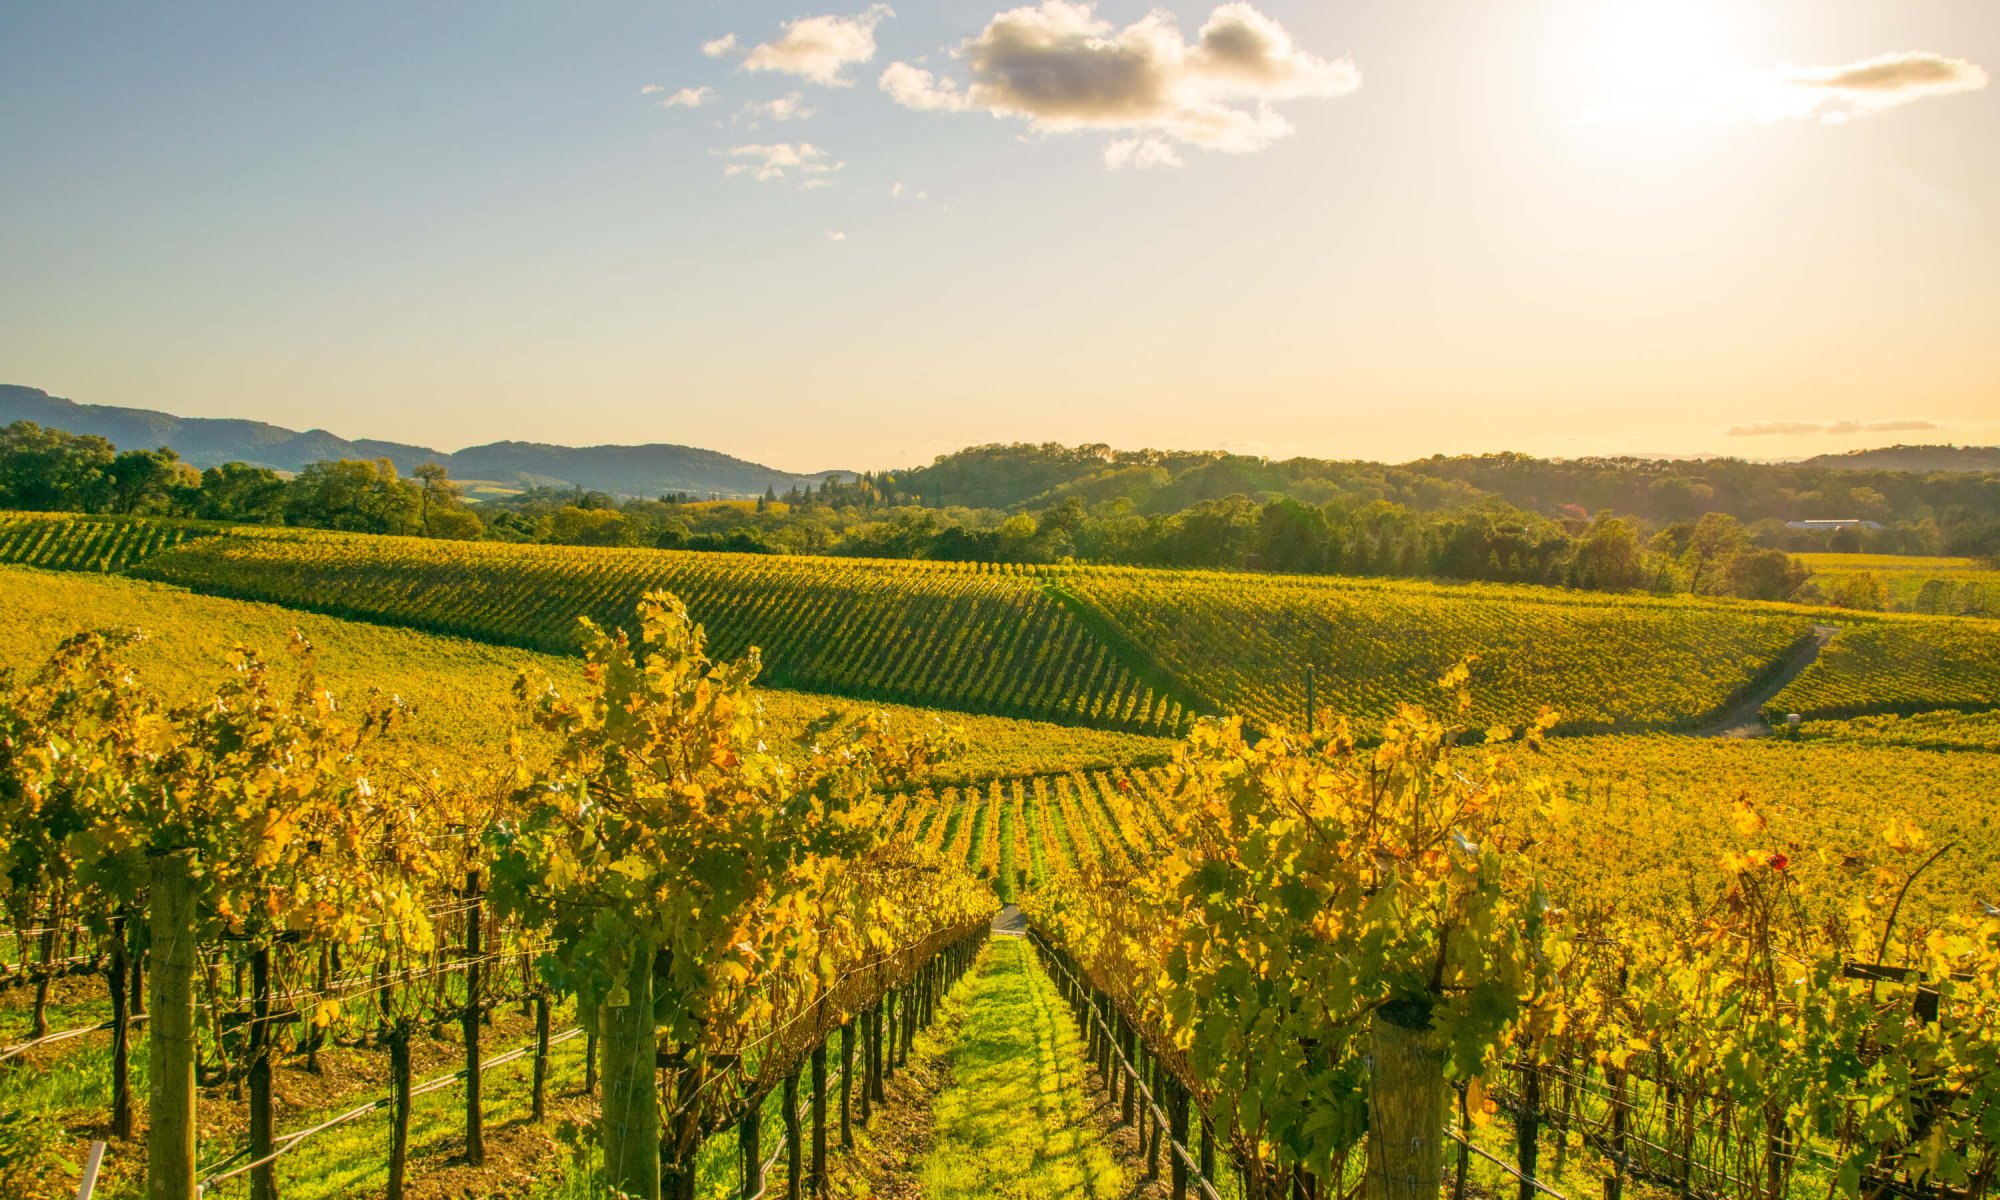 View of rolling hills in lush green vineyard